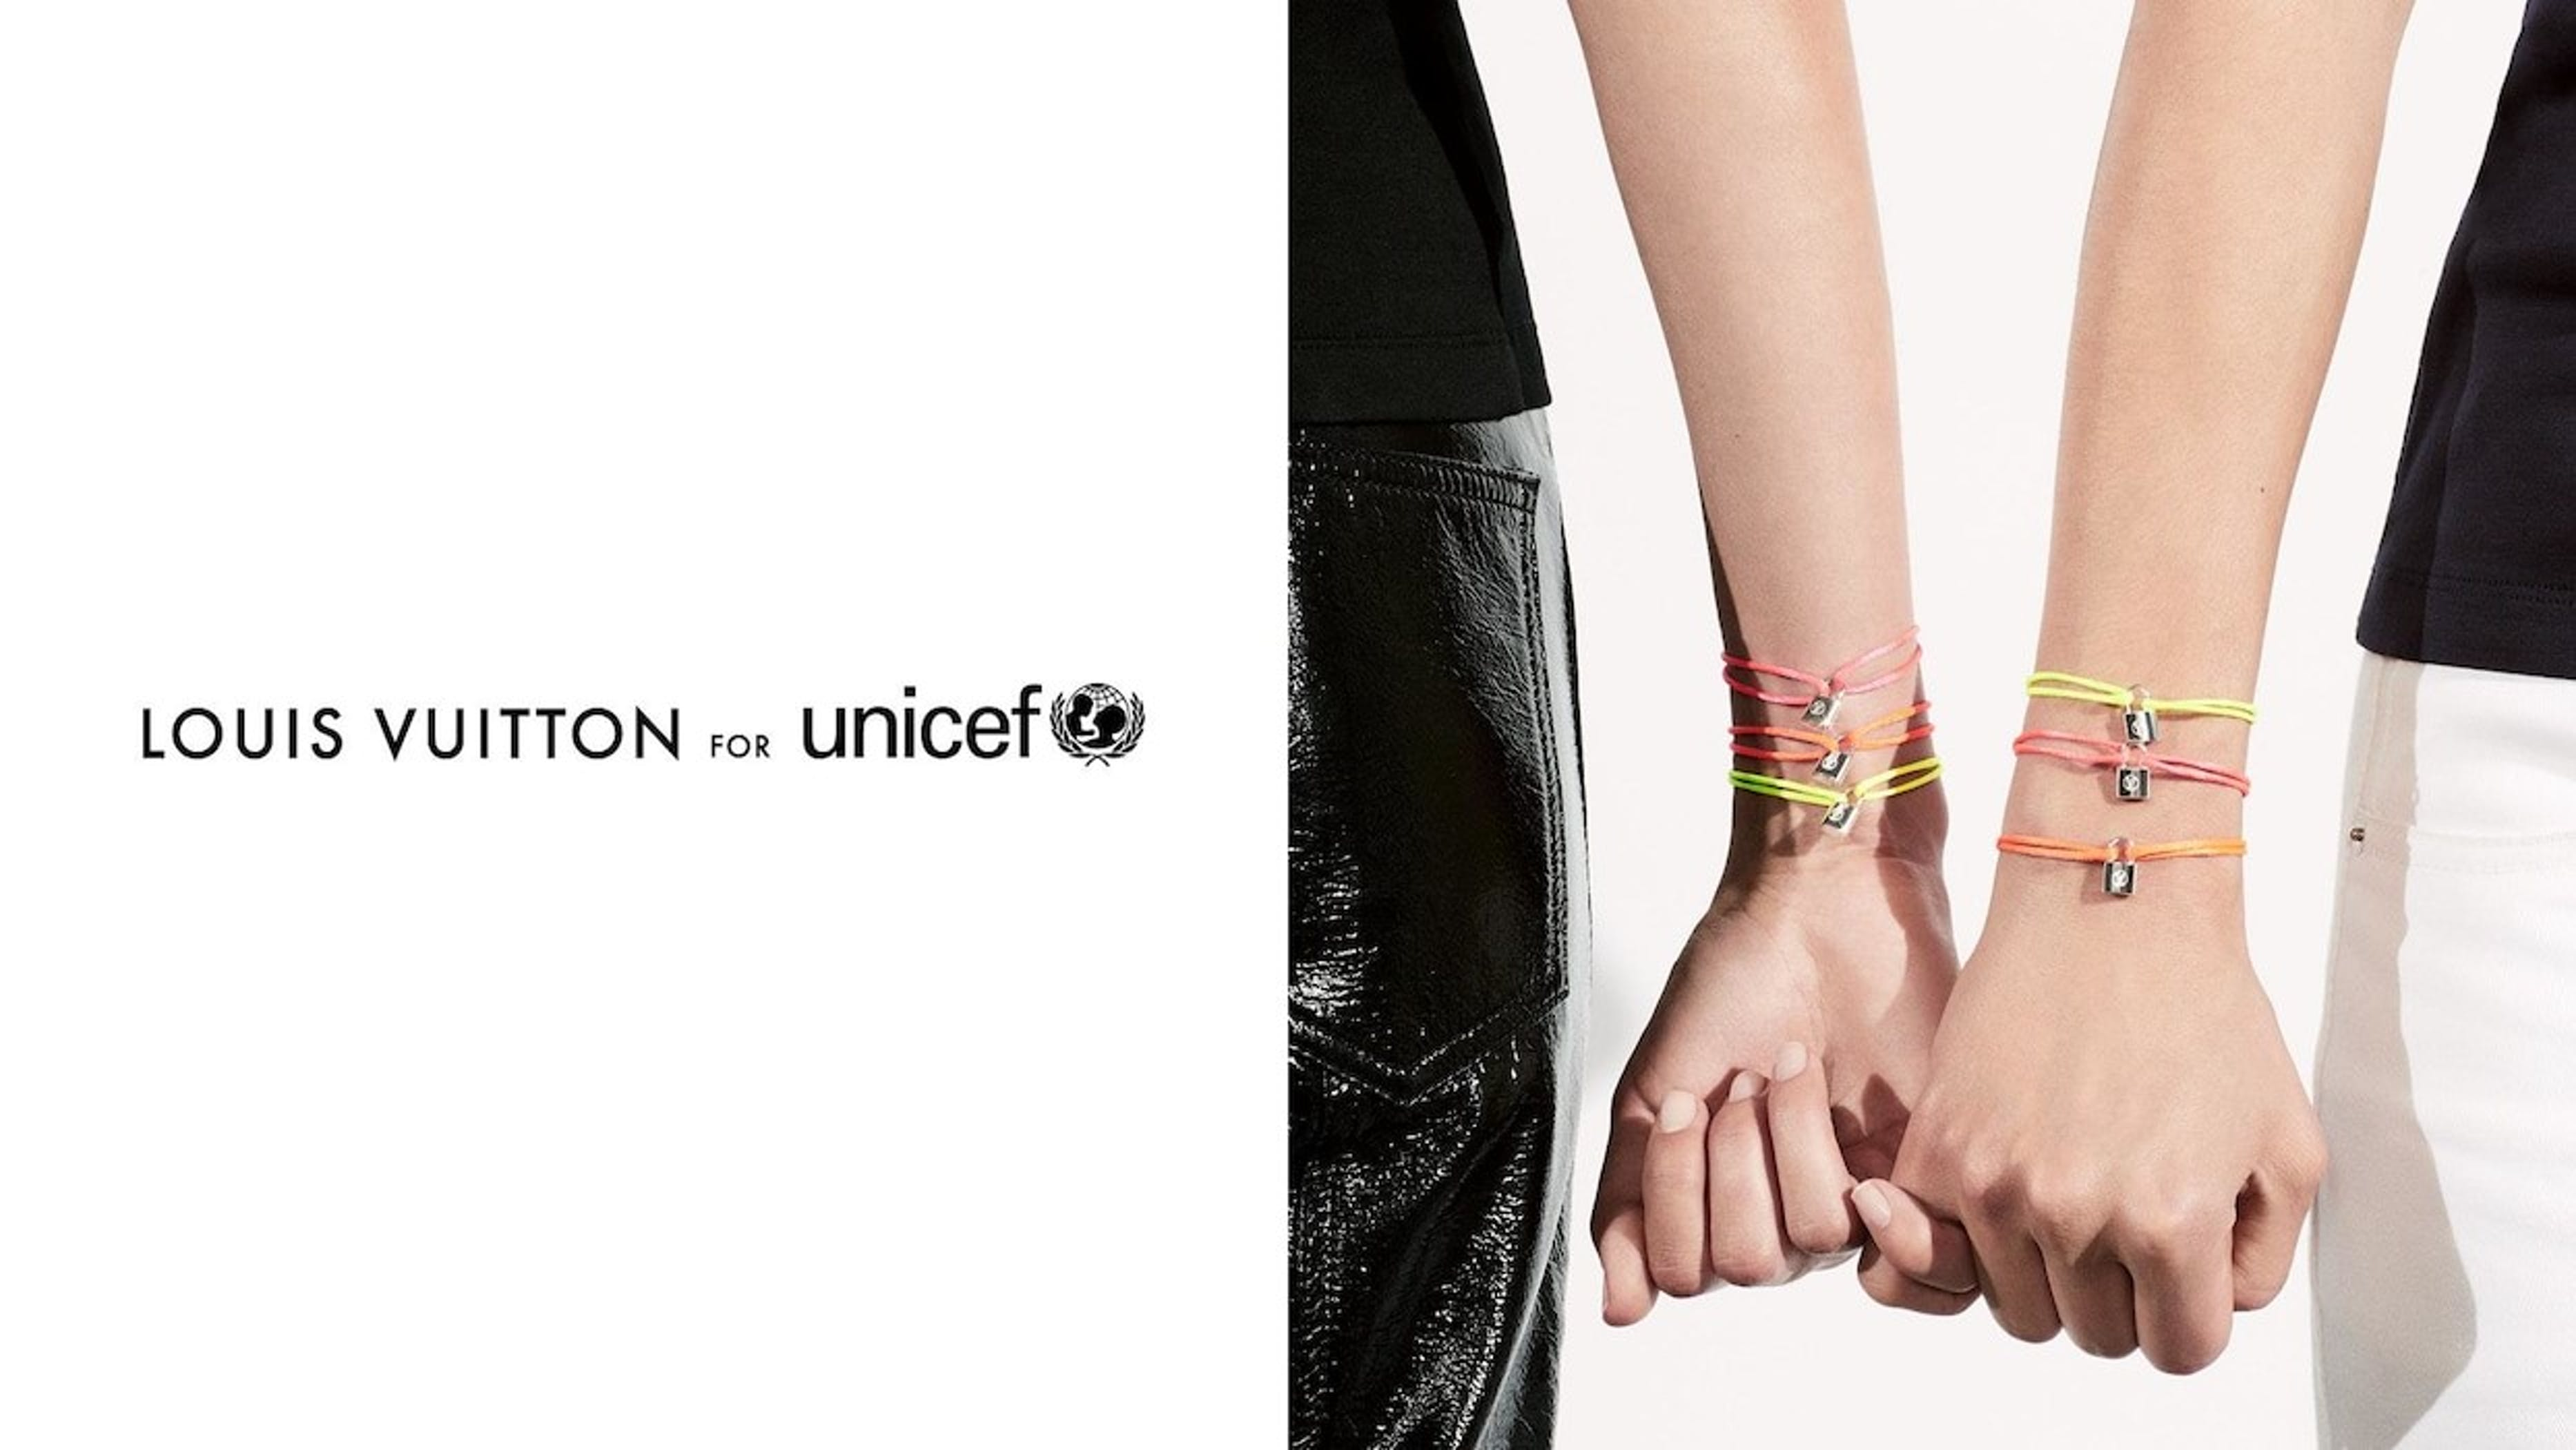 UNICEF e Louis Vuitton, con #Makeapromise l'amore non ha confini